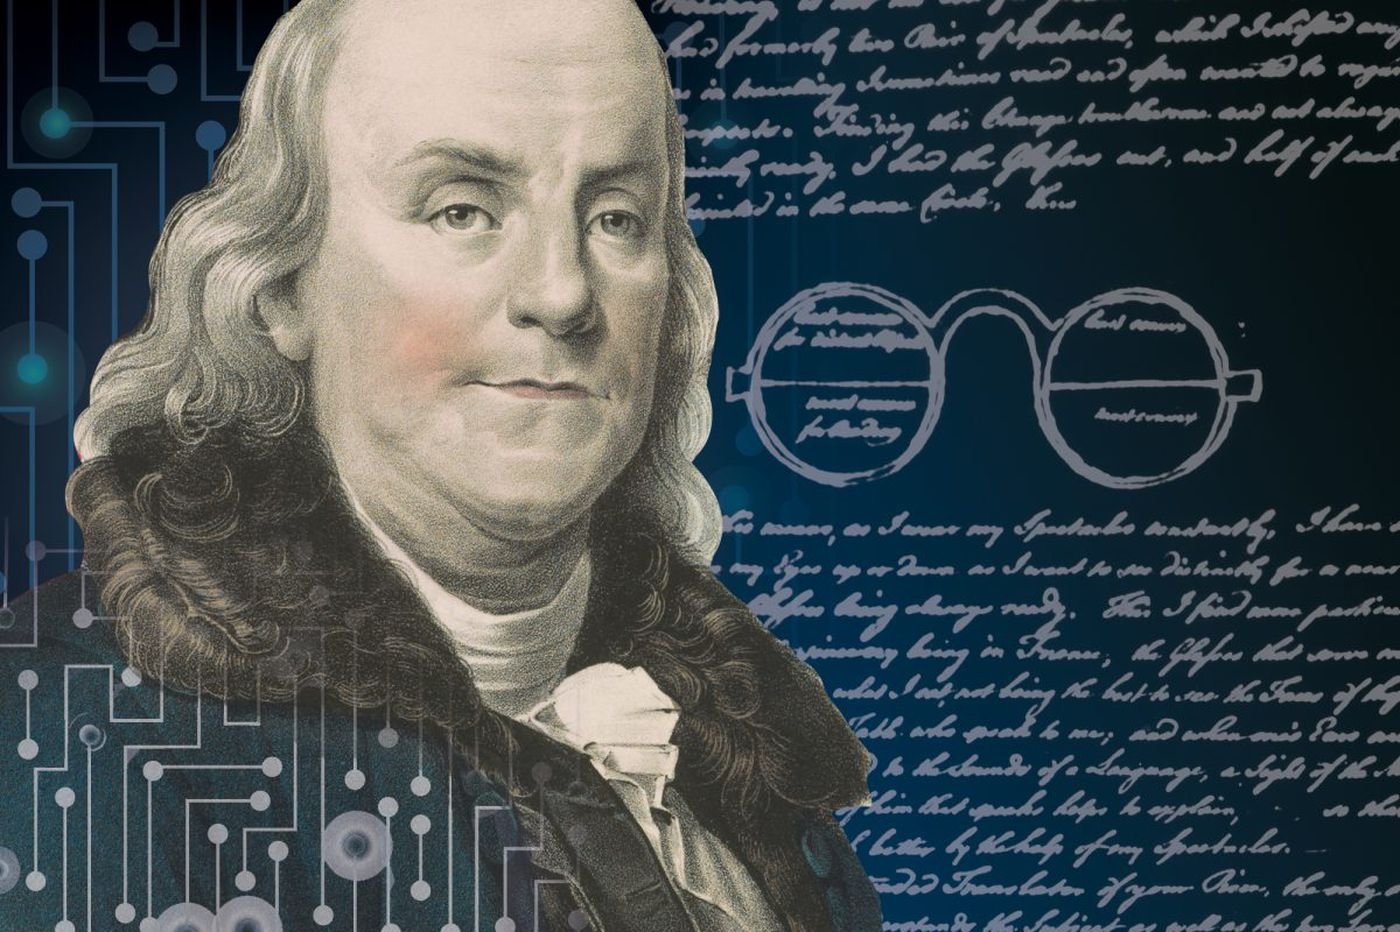 More of Ben Franklin to love: 8,000 of his papers are now digitized online